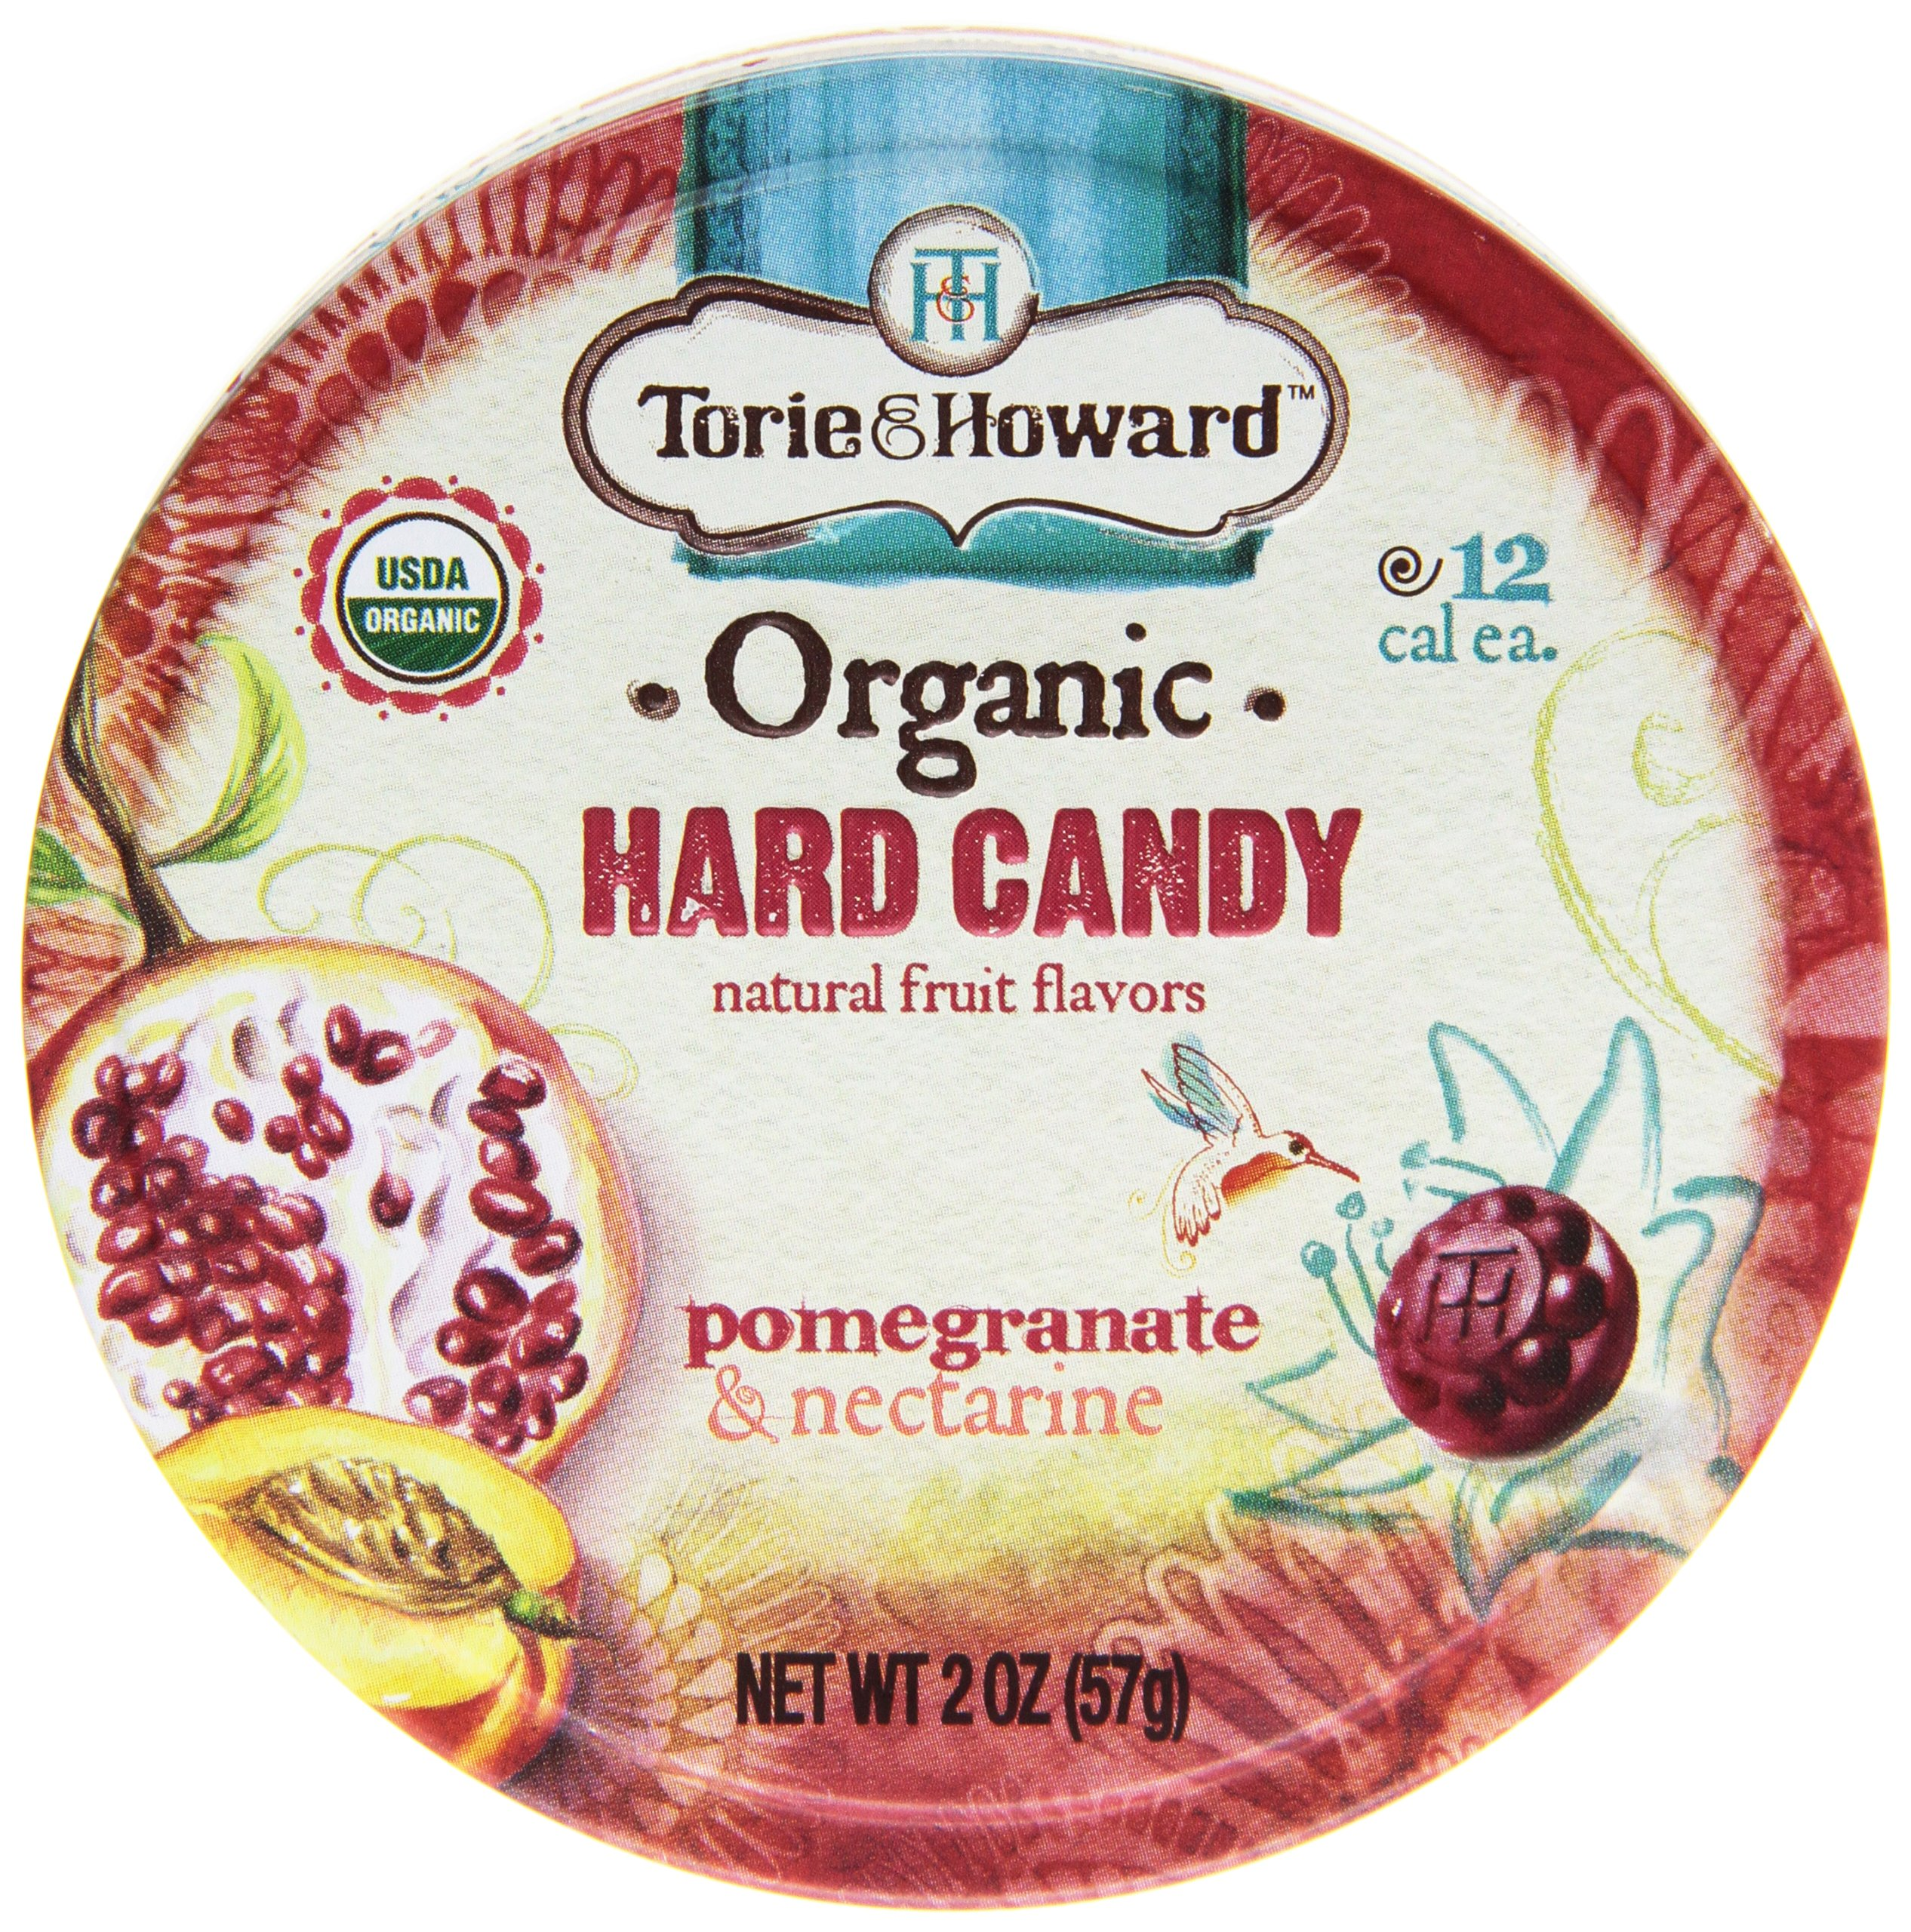 Torie & Howard Natural Fruits Organic Hard Candy, Pomegranate and Nectarine, 2 Ounce